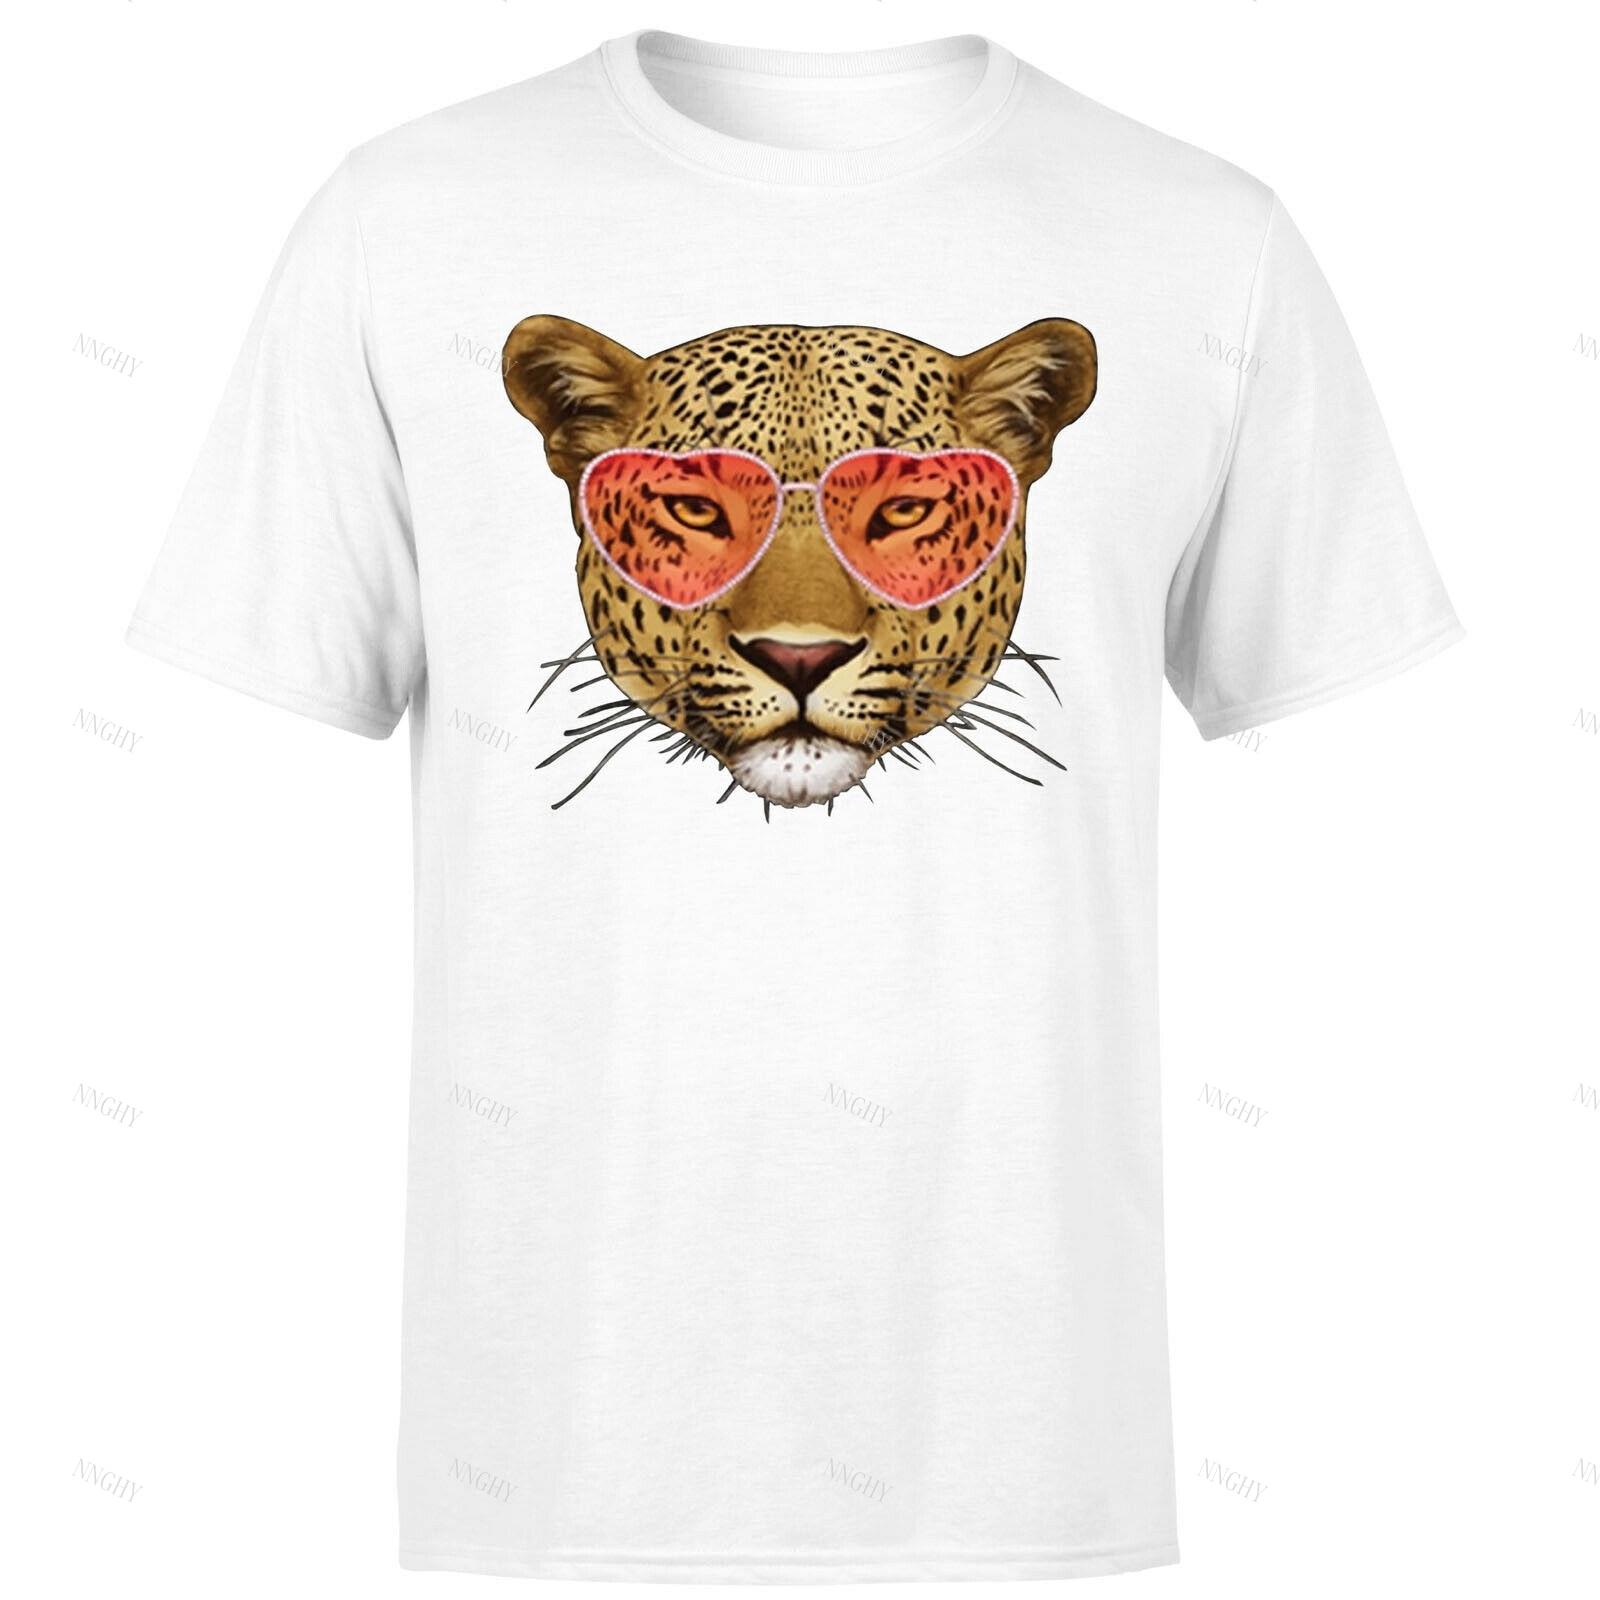 Leopard Wearing Sunglasses Unisex T Shirt Funny Animal Lovers Gift Tee Top